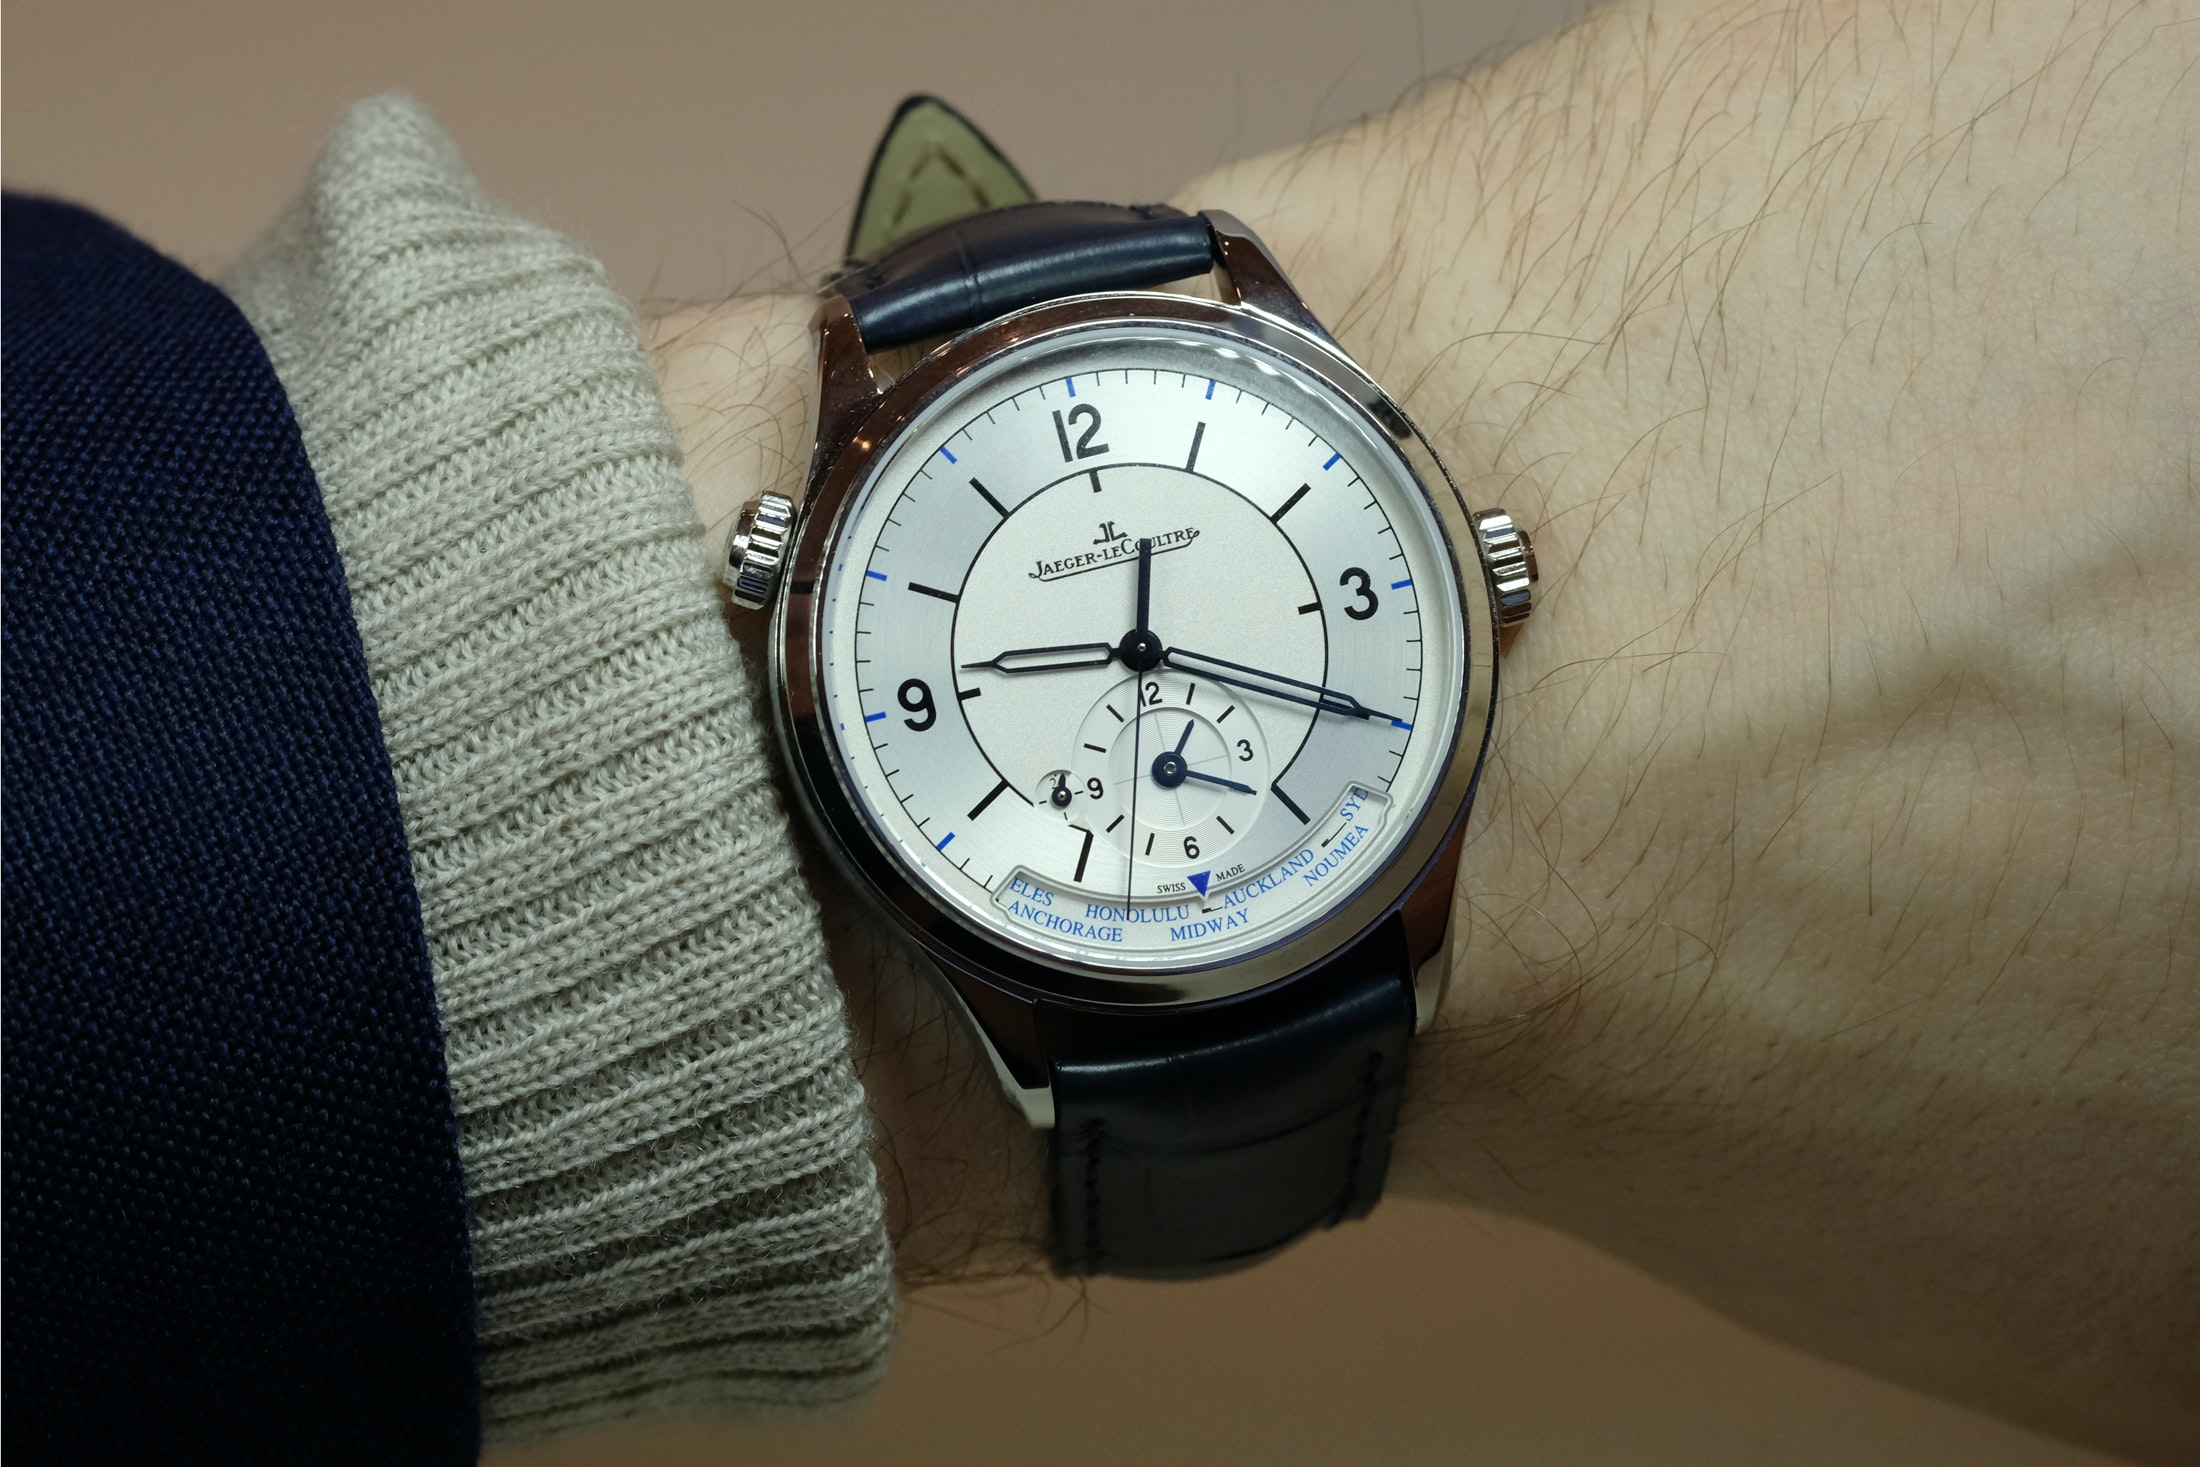 Introducing: The Jaeger-LeCoultre Master Control Collection With Sector Dials (Live Pics + Pricing) Introducing: The Jaeger-LeCoultre Master Control Collection With Sector Dials (Live Pics + Pricing) sector 06